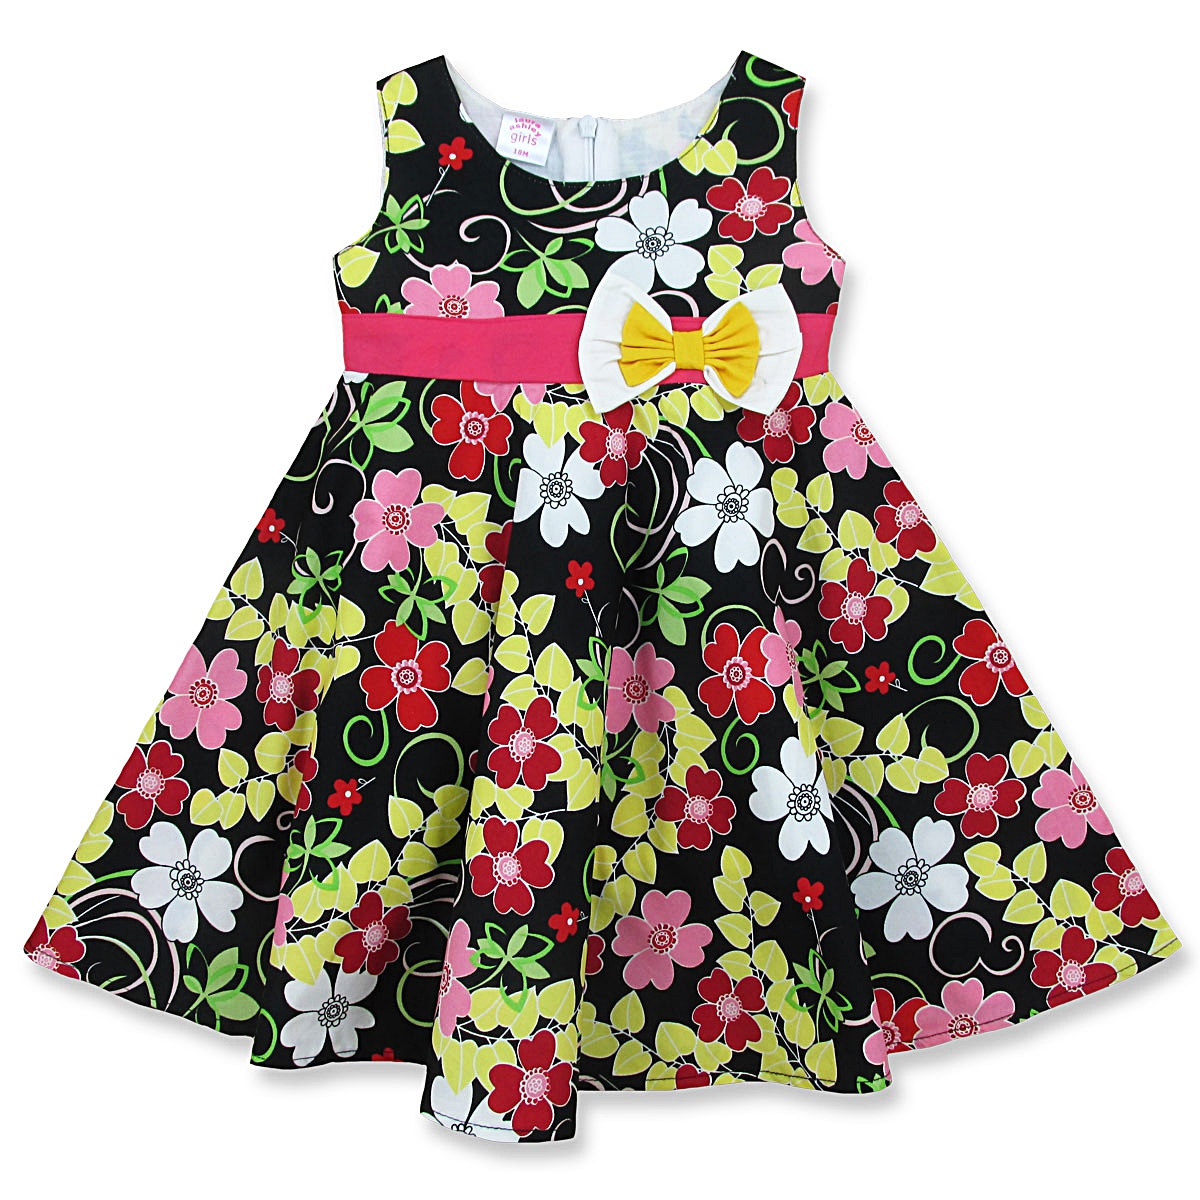 Wholesale Branded Baby Clothes Wholesale Baby Clothes Wholesale